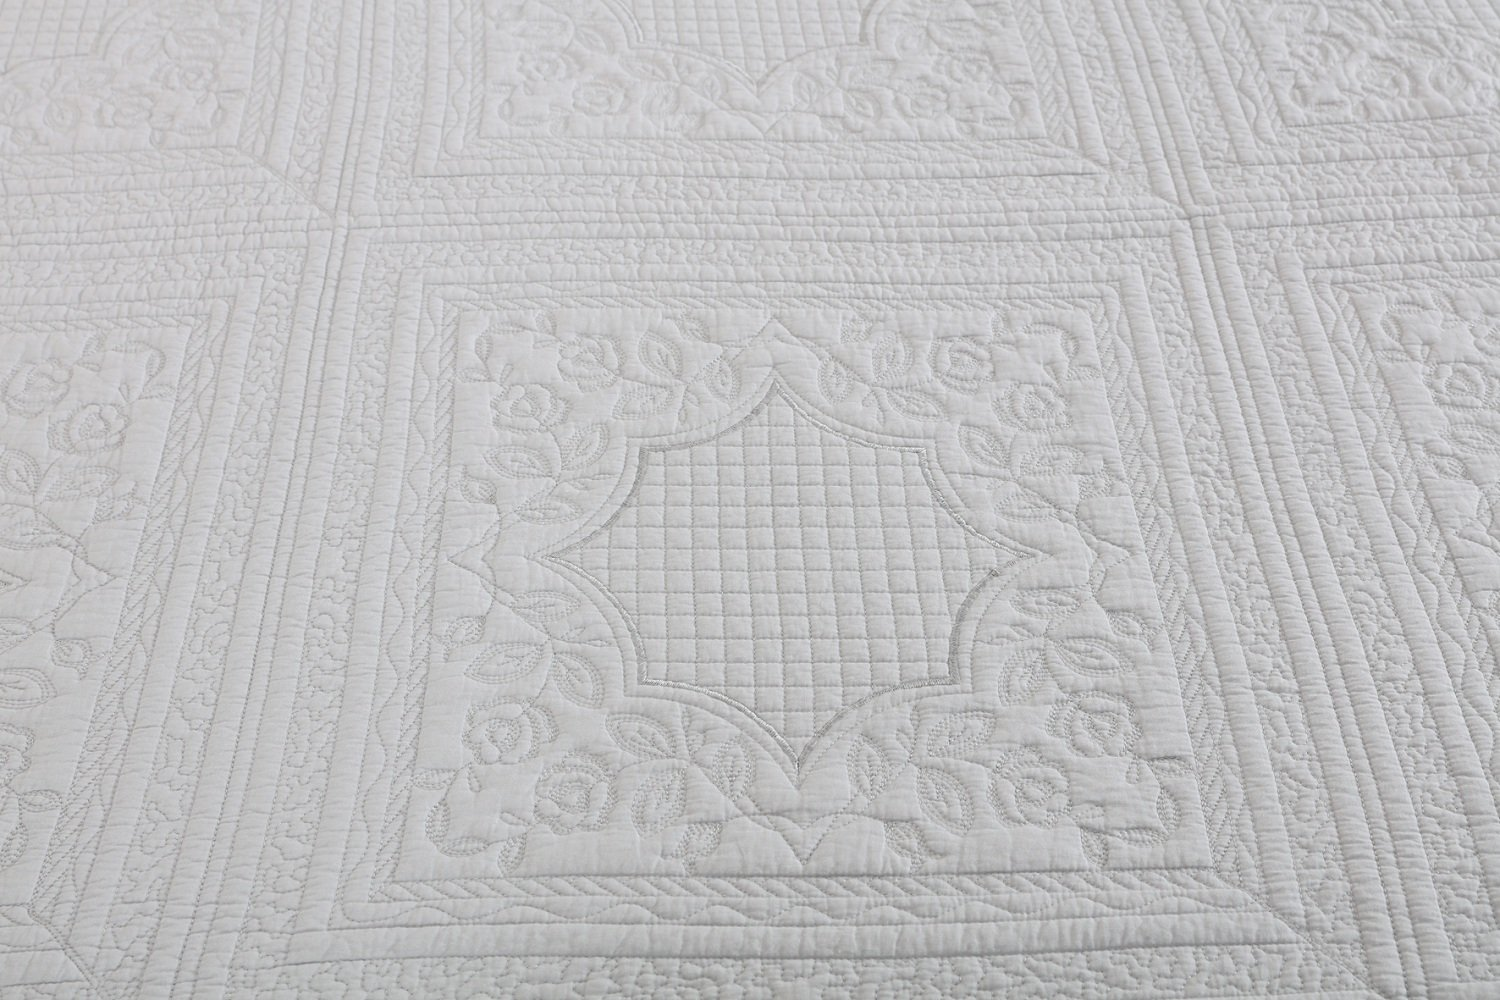 Unimall super king size quilted bedspread cotton patchwrok